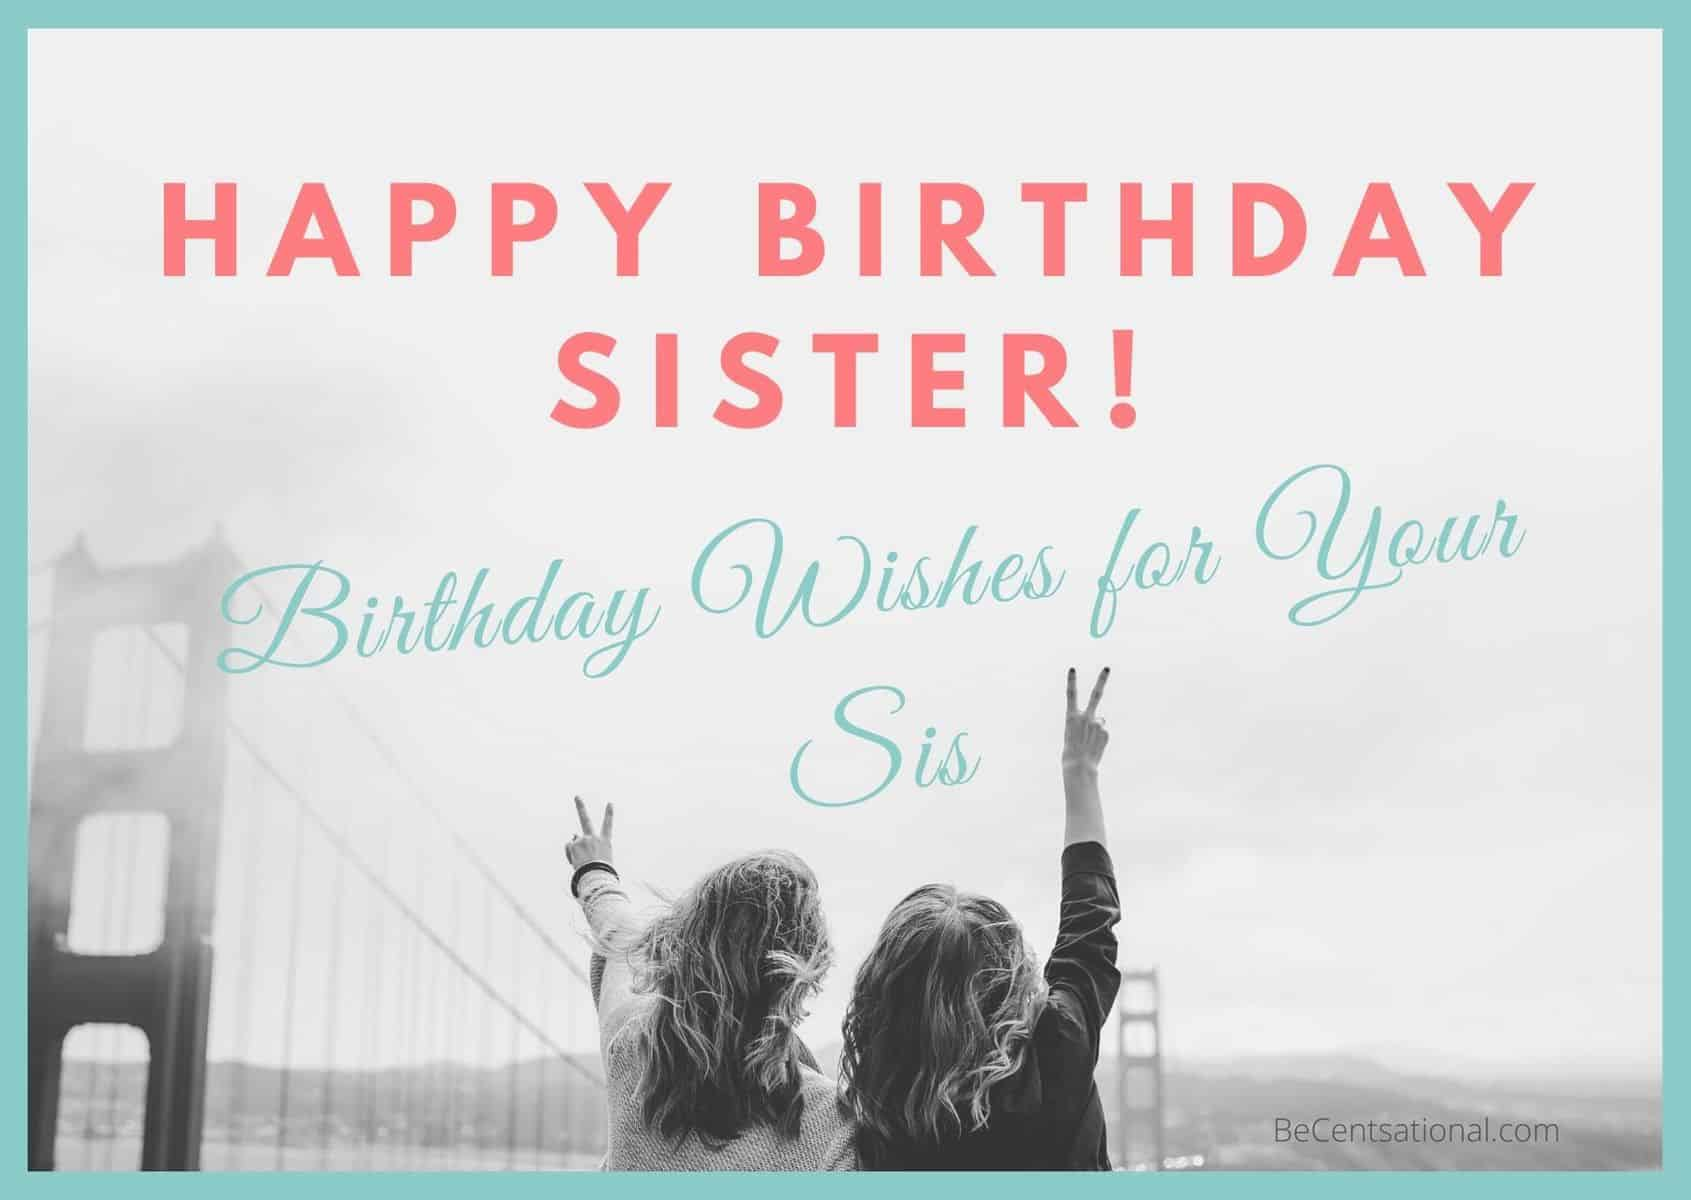 Happy Birthday Sister 50 Birthday Wishes For Your Sis Be Centsational